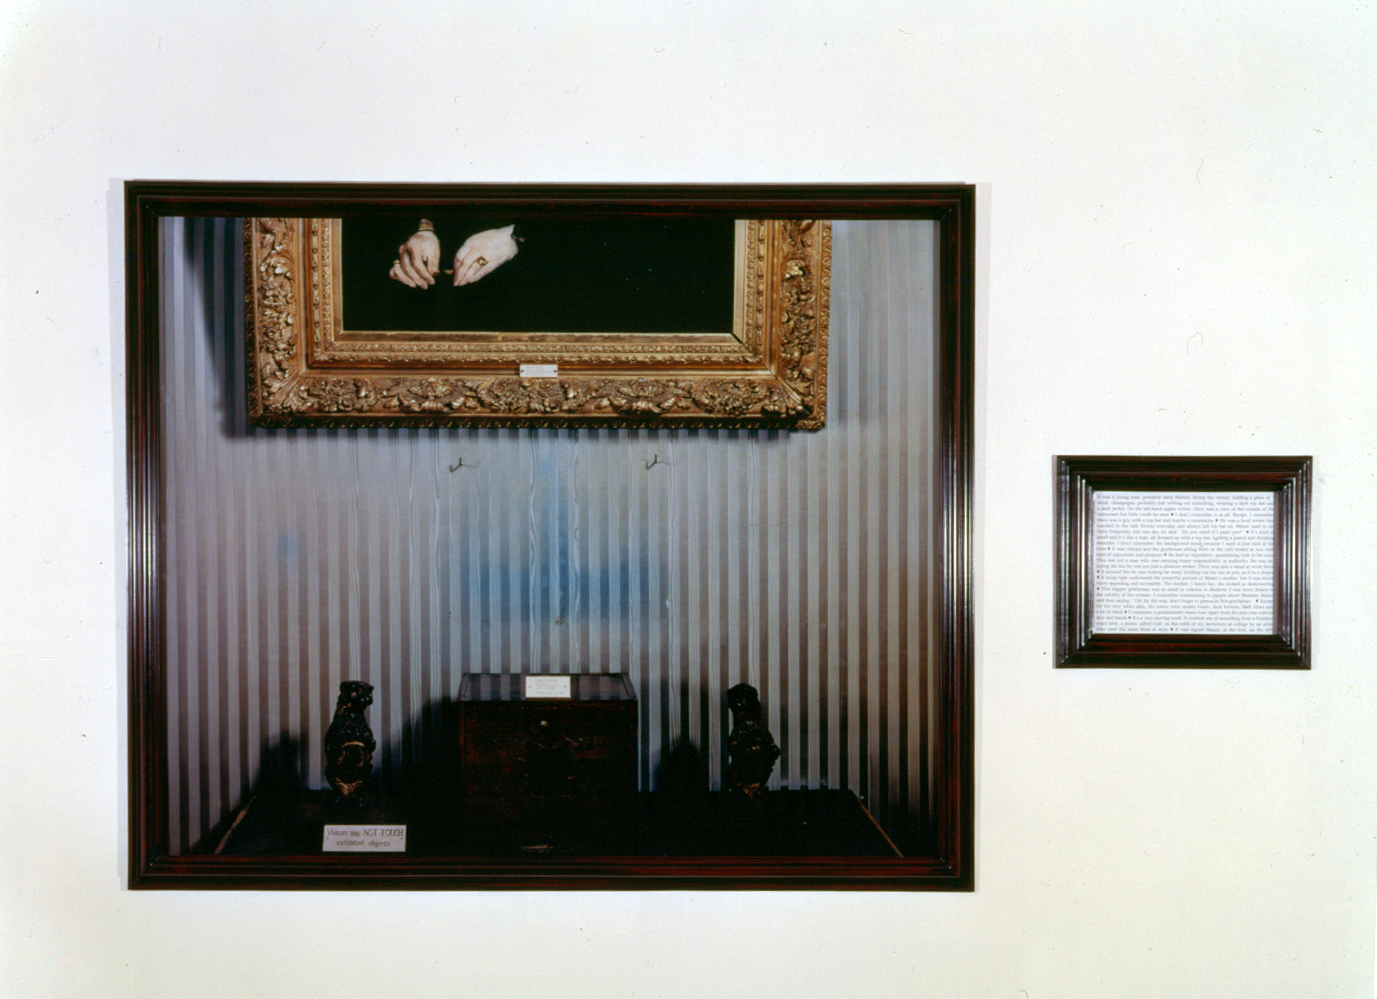 Sophie Calle, Last Seen... (Manet, Chez Tortoni), 1991 1 Ektachrome photograph and 1 lithograph Photo: 53 1⁄2 x 64 9/16 in (136 x 164 cm) Text: 16 1/8 x 19 11/16 in (41 x 50 cm) Edition of 2 French, 2 English Photo: Dorothy Zeidman © 2013 Sophie Calle / Artists Rights Society (ARS), New York / ADAGP, Paris. Courtesy of Sophie Calle, Paula Cooper Gallery, New York, and Isabella Stewart Gardner Museum, Boston.